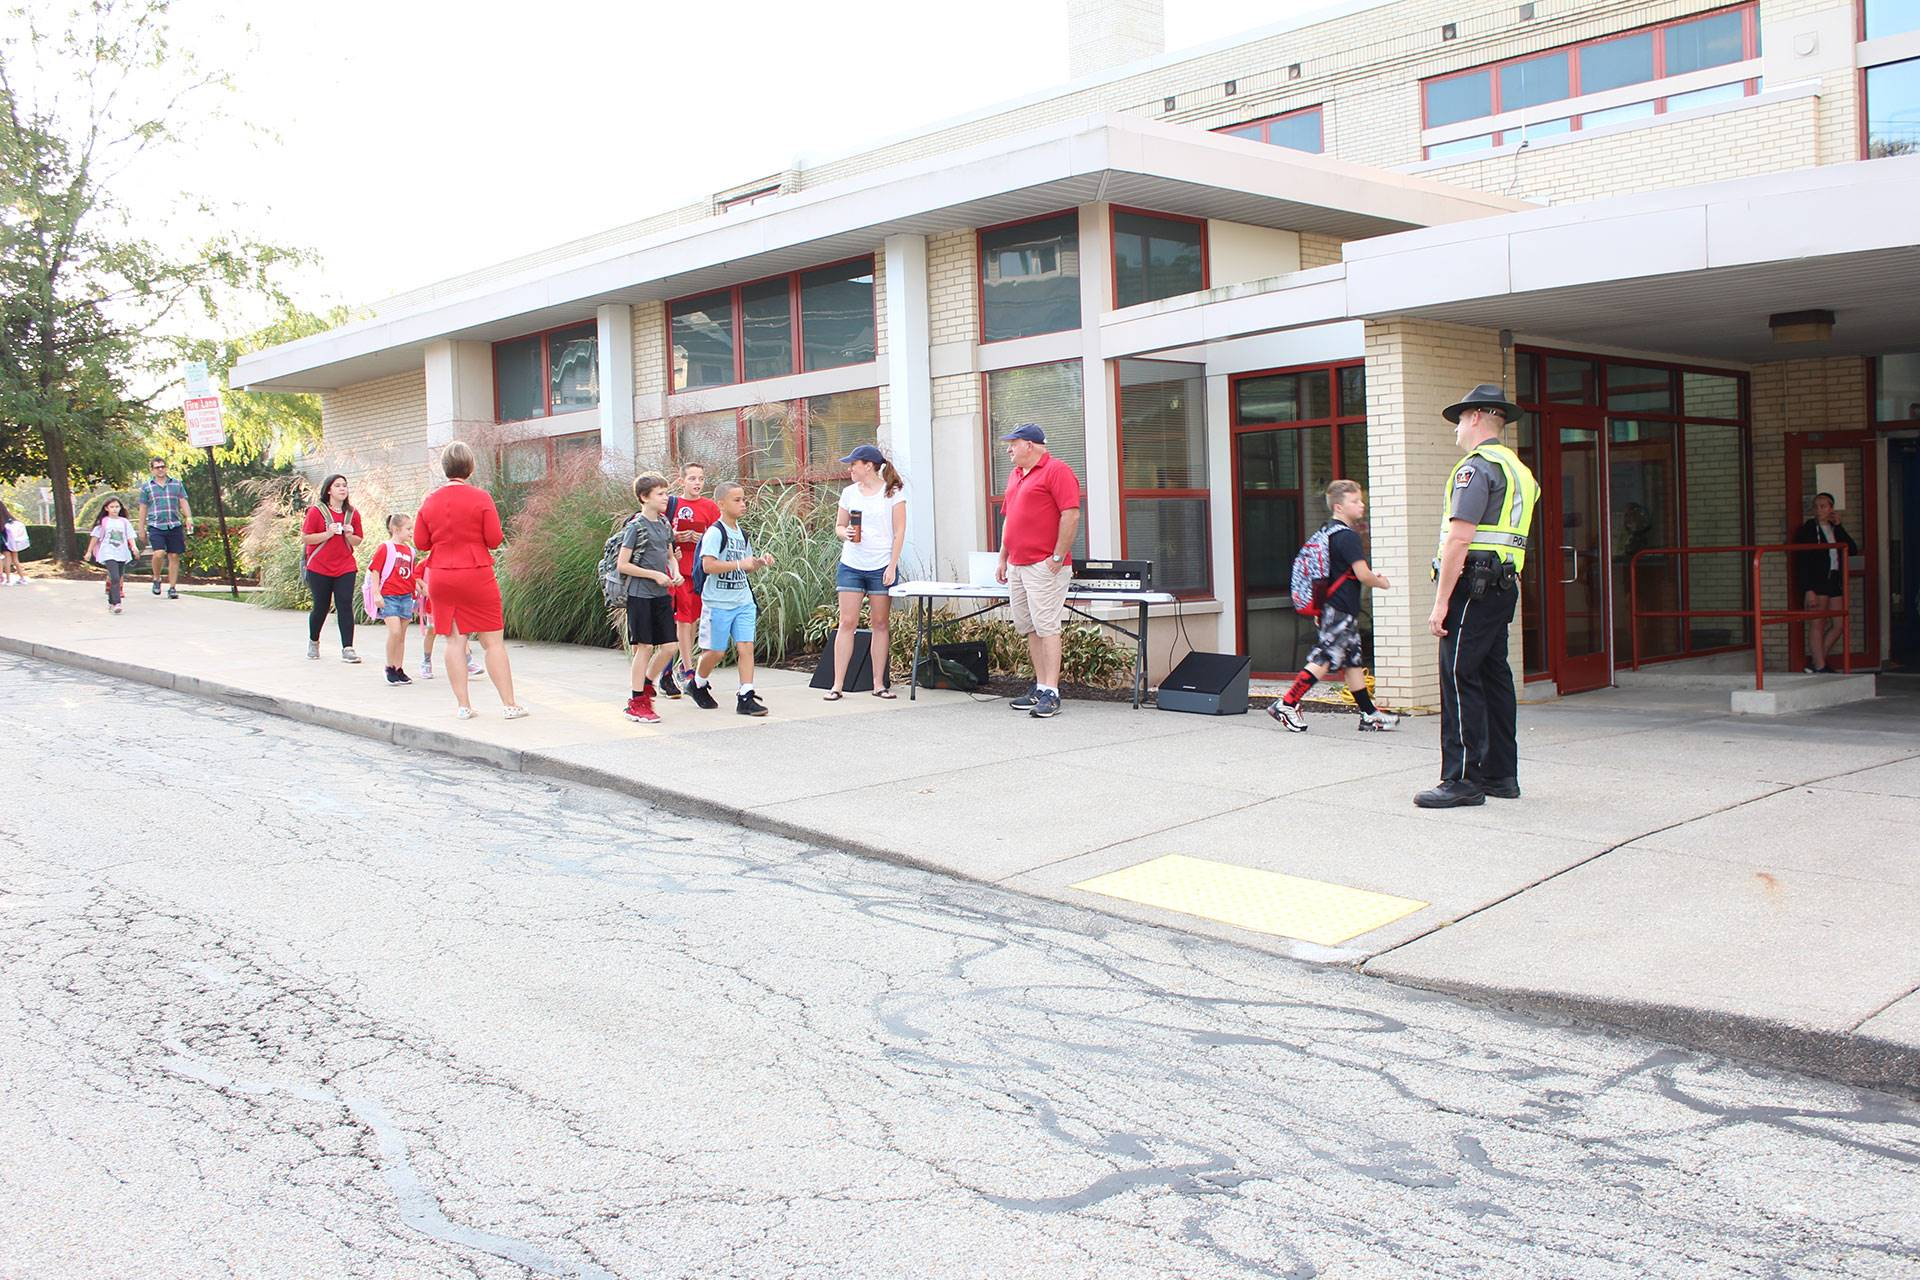 Students walking into West View Elementary School on International Walk to School Day